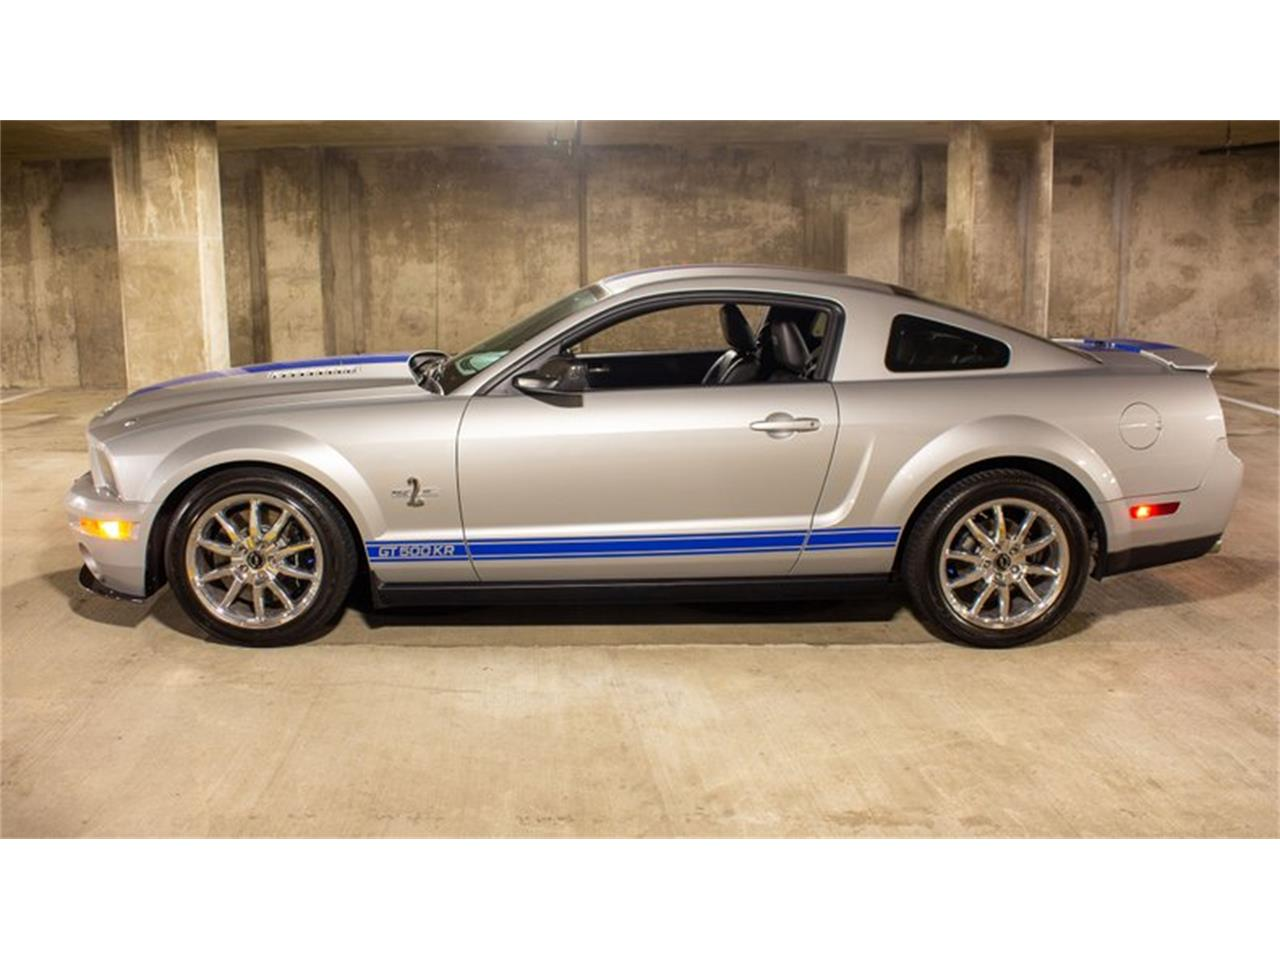 2008 Shelby GT500 for sale in Rockville, MD – photo 2